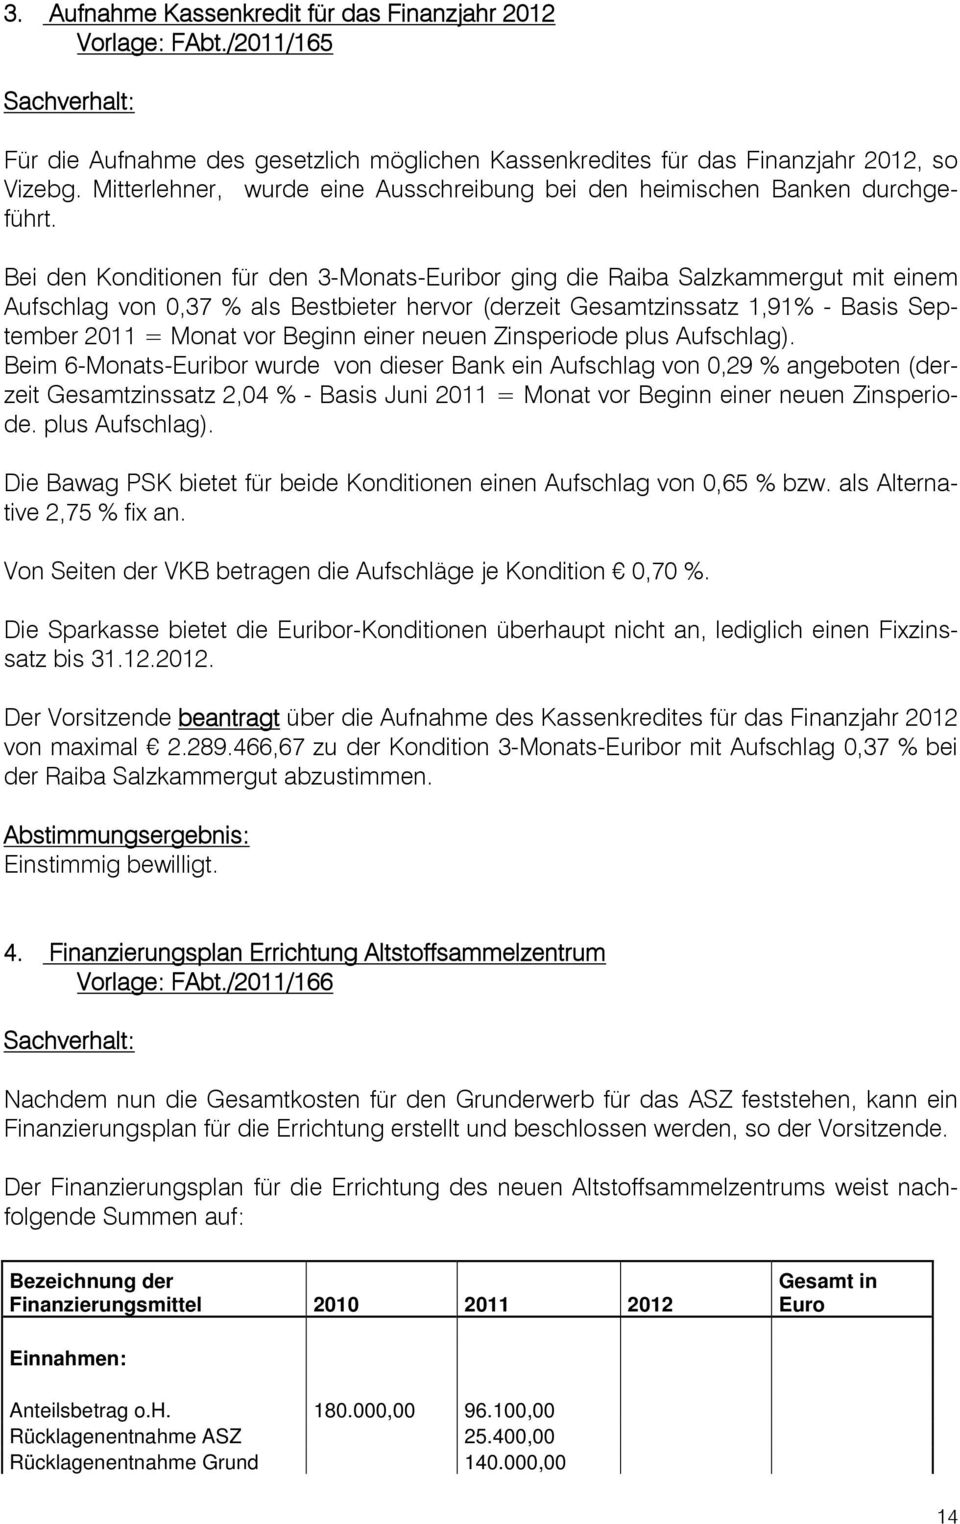 Groß Bordkartenvorlagen Bilder - Entry Level Resume Vorlagen ...